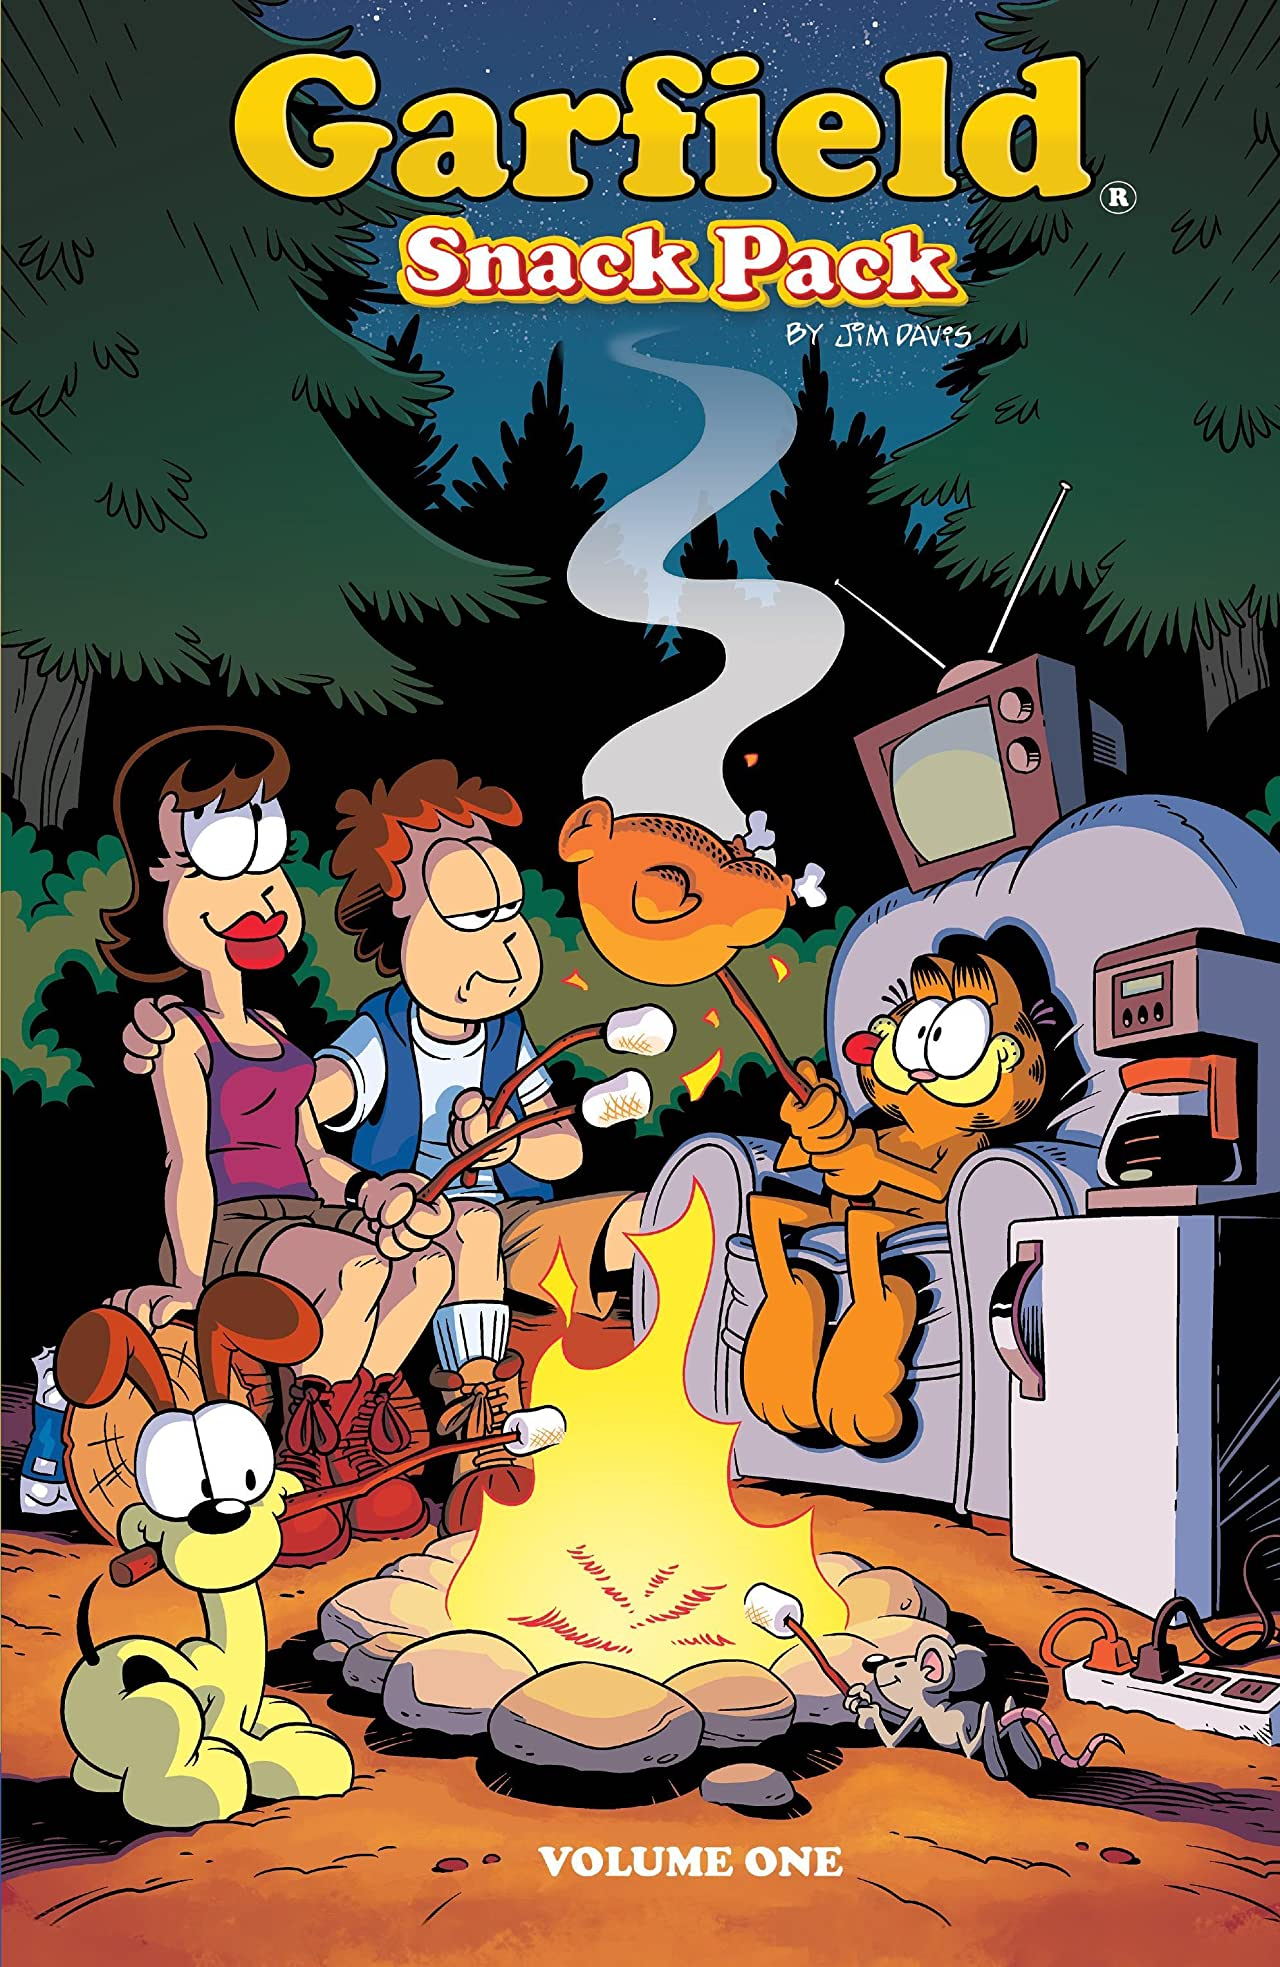 Garfield: Snack Pack Vol. 1